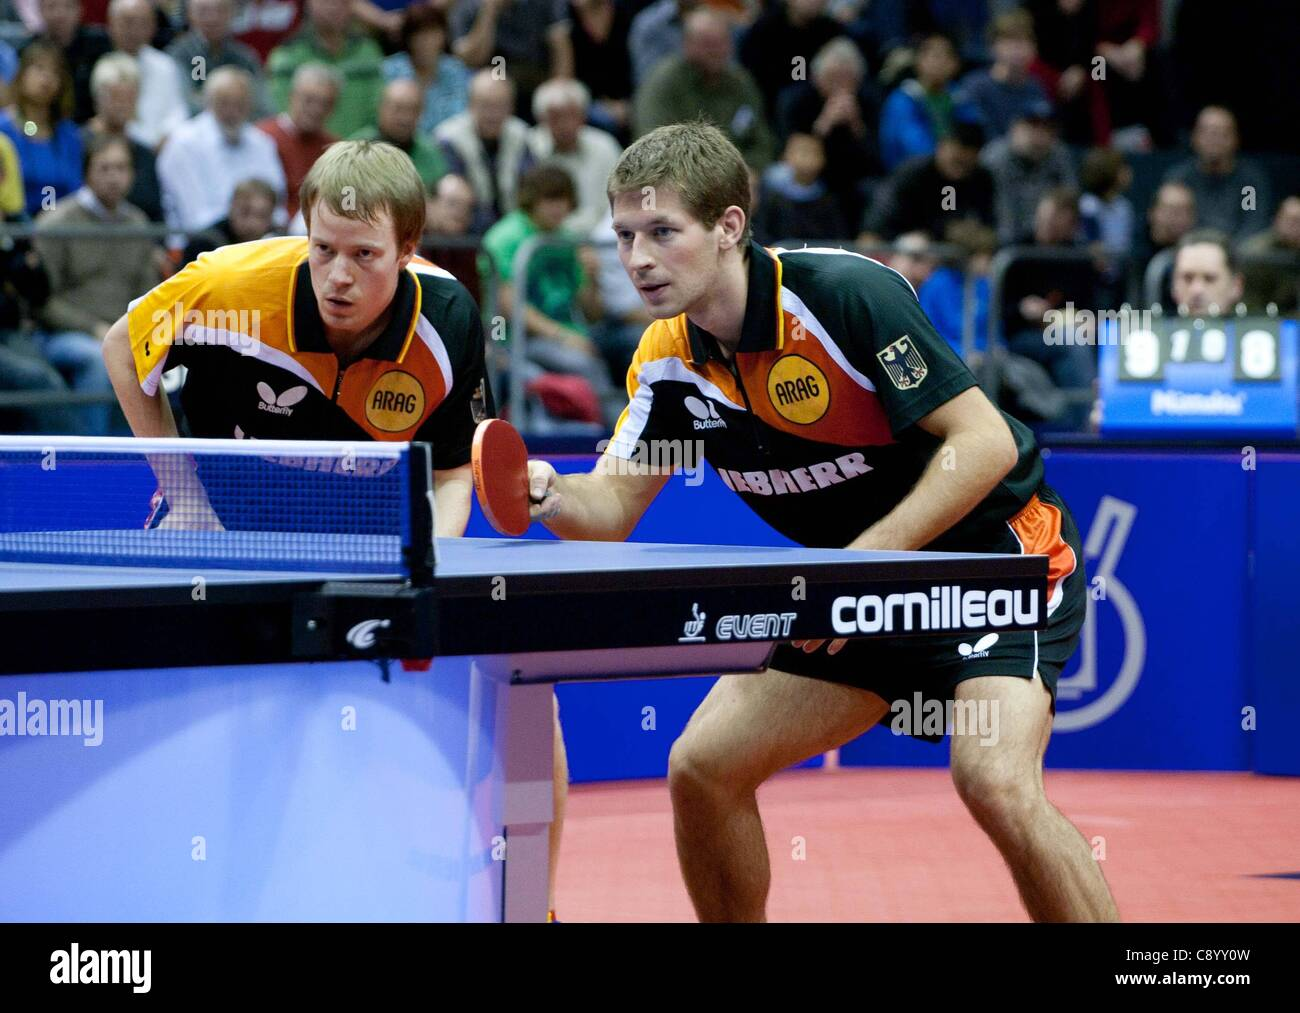 05 11 2011 Magdeburg, Germany. Double Bastian Steger right and Patrick Tree ger Semi-finals Germany vs China Table - Stock Image